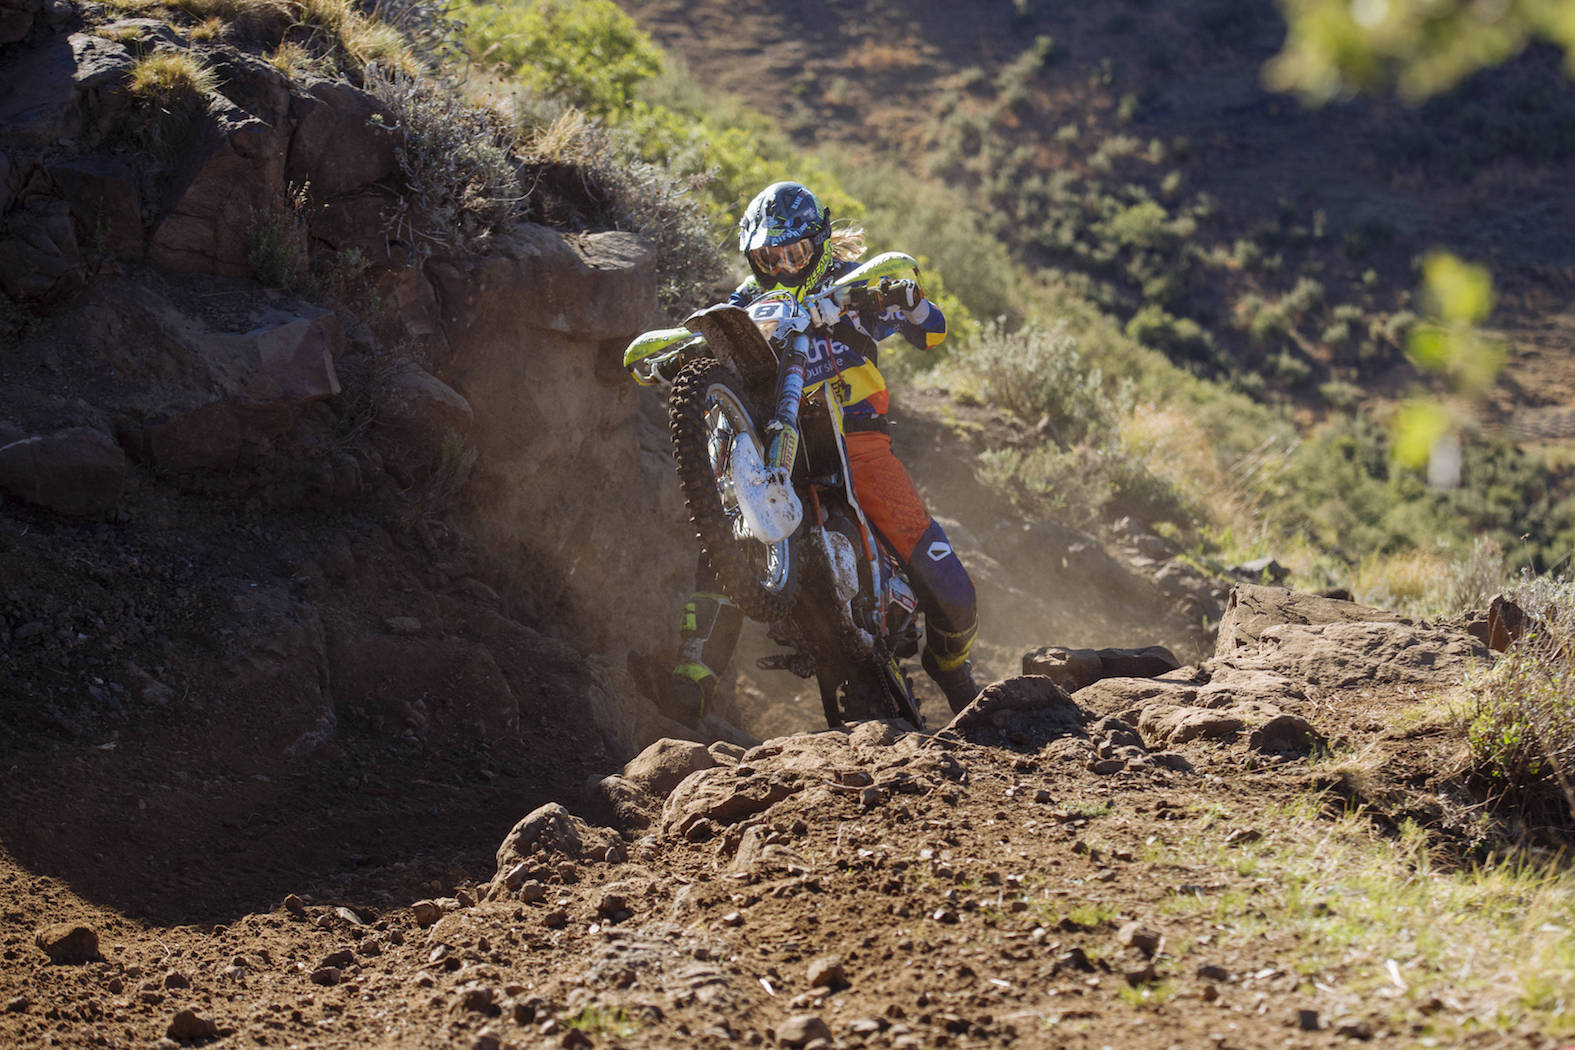 Kirsten Landman competing in the Motul Roof of Africa